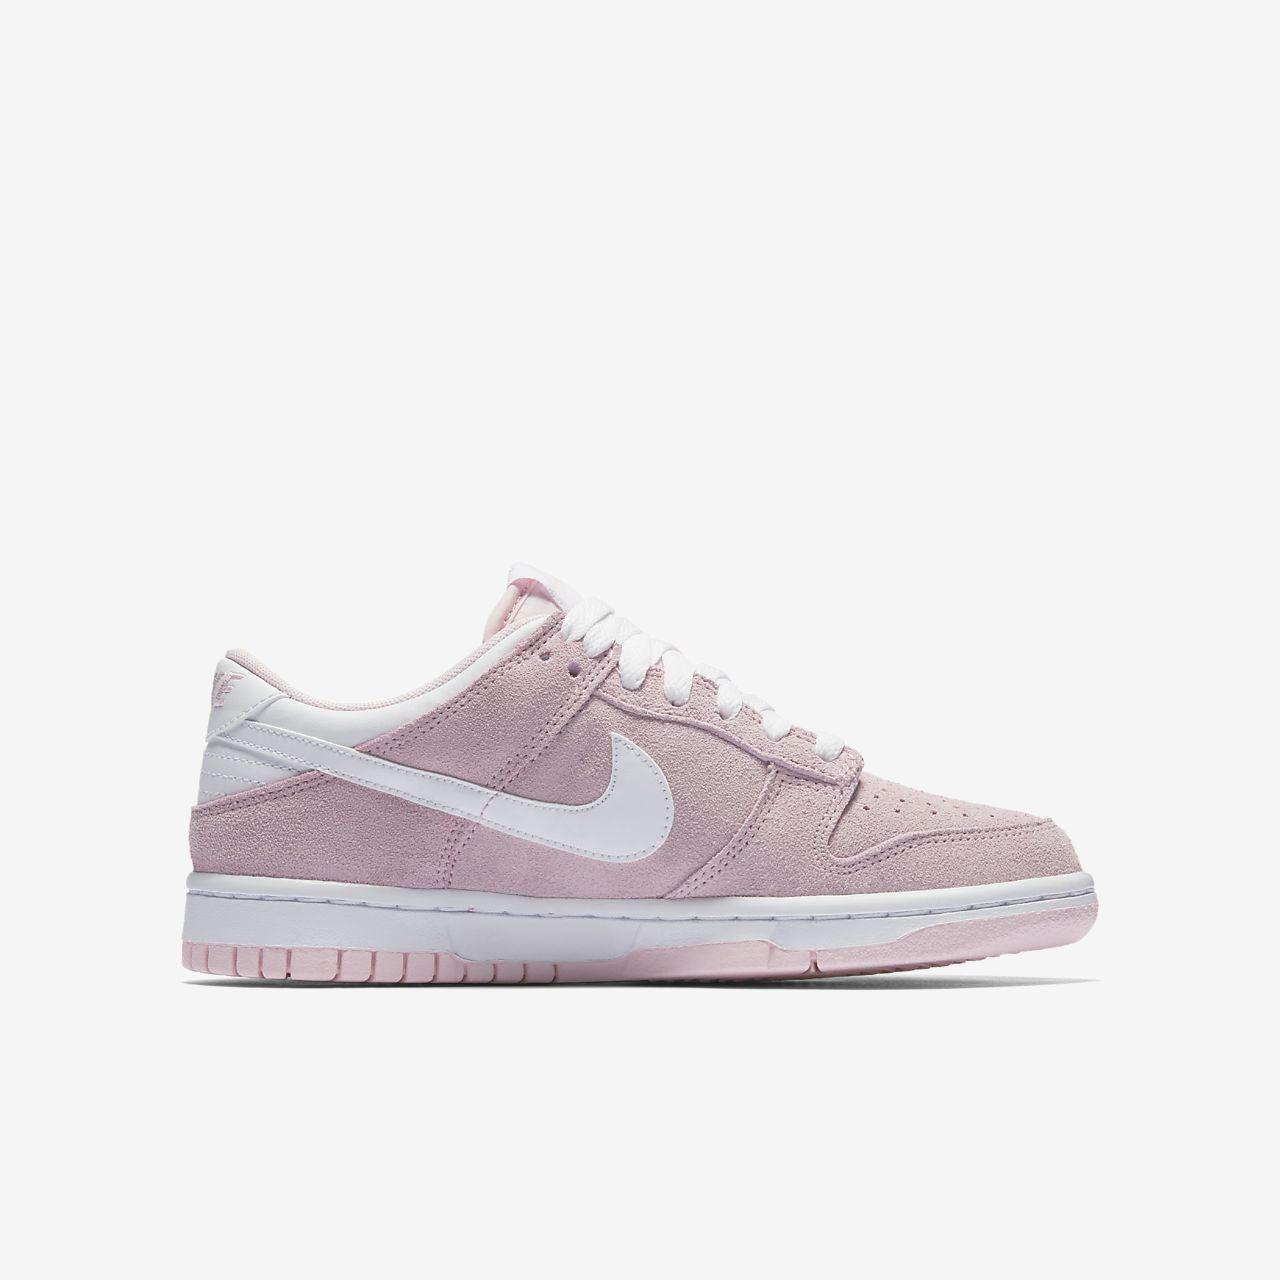 Nike Dunk Chaussures Basses Rose dc9B24ZB